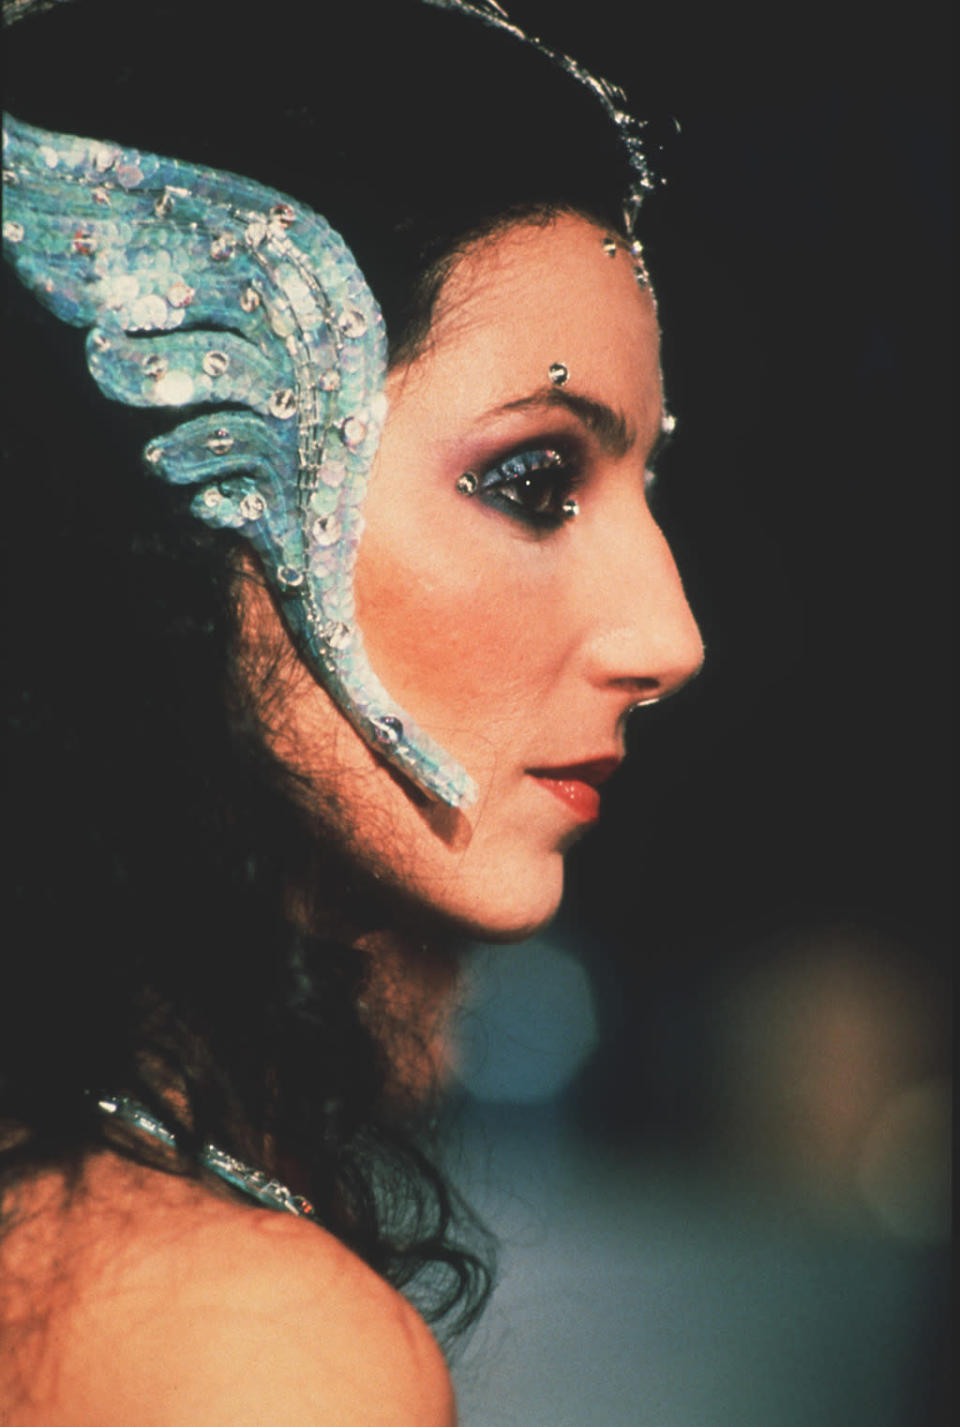 <p>Over-the-top looks started early — here, in 1976, with turquoise lids, matching sequined wings, and a jeweled forehead. <i>(Photo: MPTV Images)</i></p>